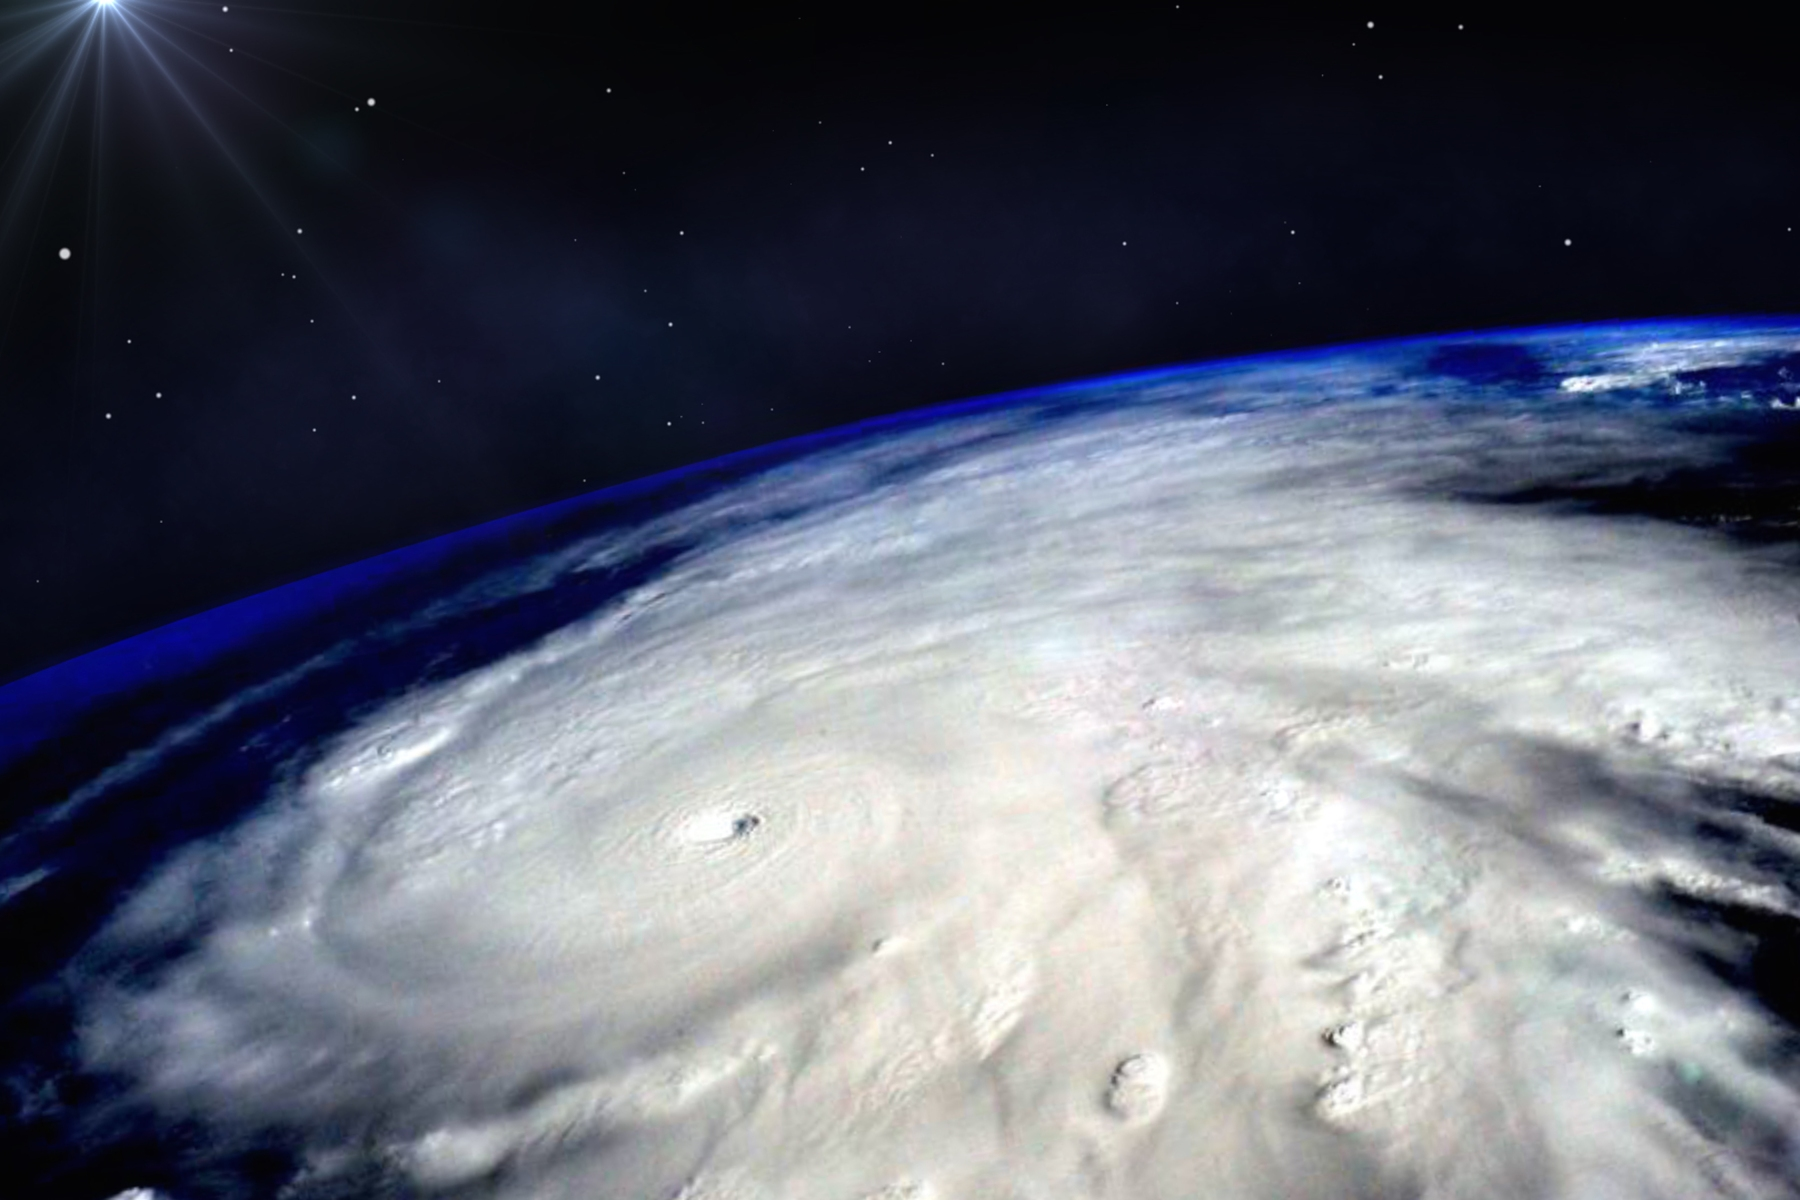 Hurricane typhoon over planet Earth viewed from space. Elements of image are furnished by NASA. Photographs of Typhoon Trami were recently captured from the International Space Station. (Photo by Elen11/iStock/Getty Images)